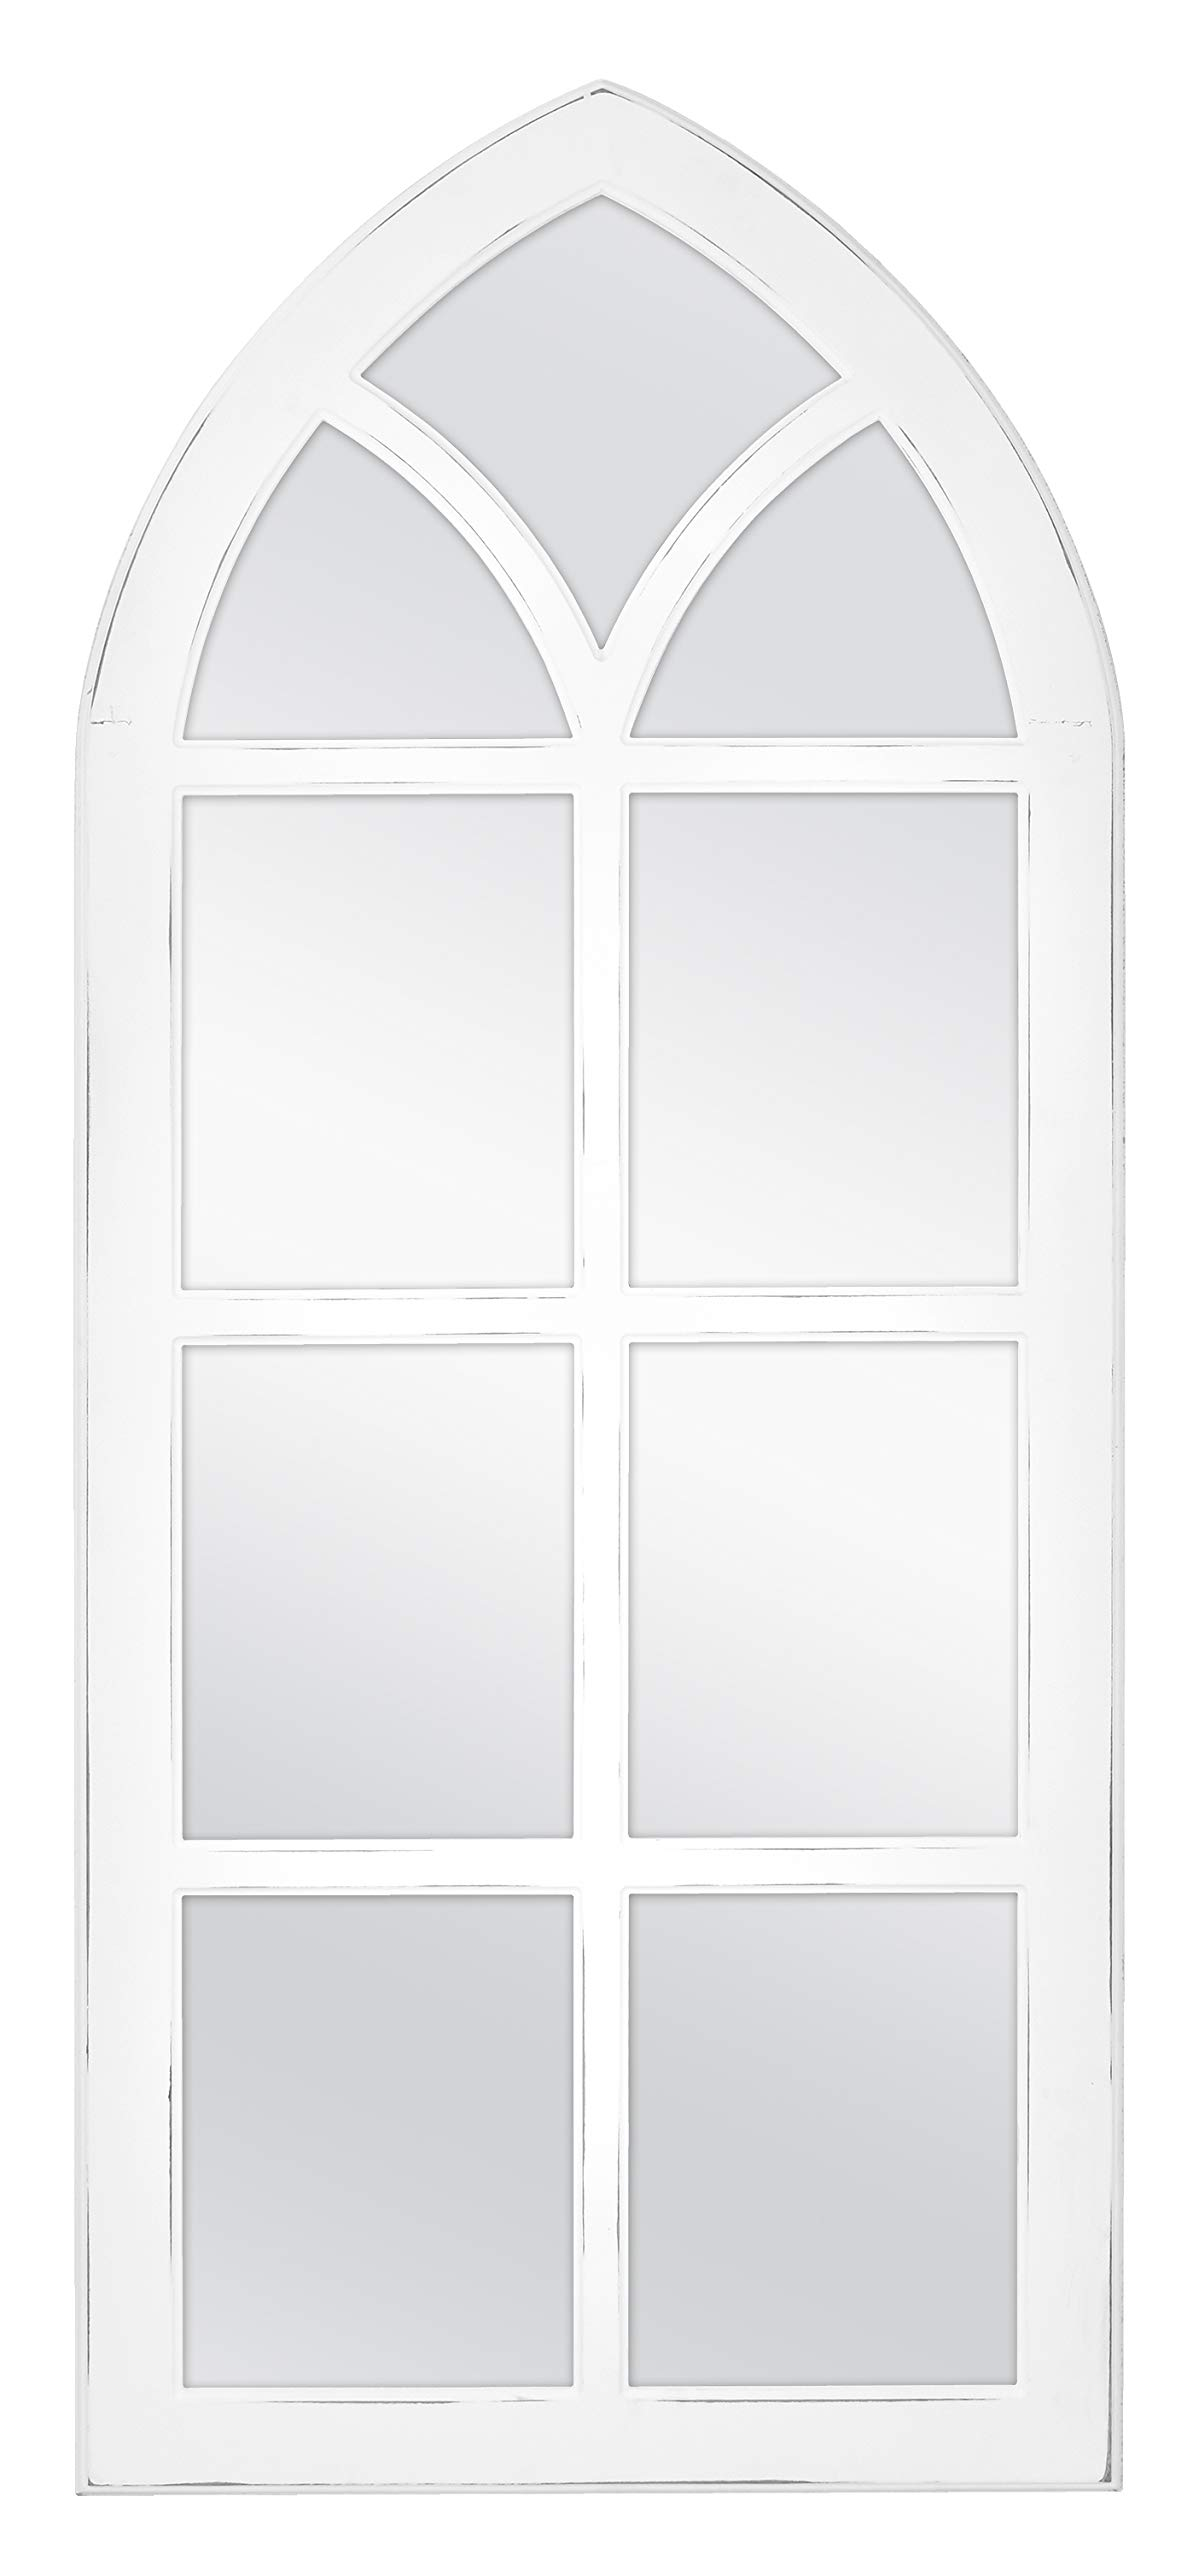 MCS Cathedral Windowpane Wall, White, 19x44 Inch Overall Size Mirror, by MCS